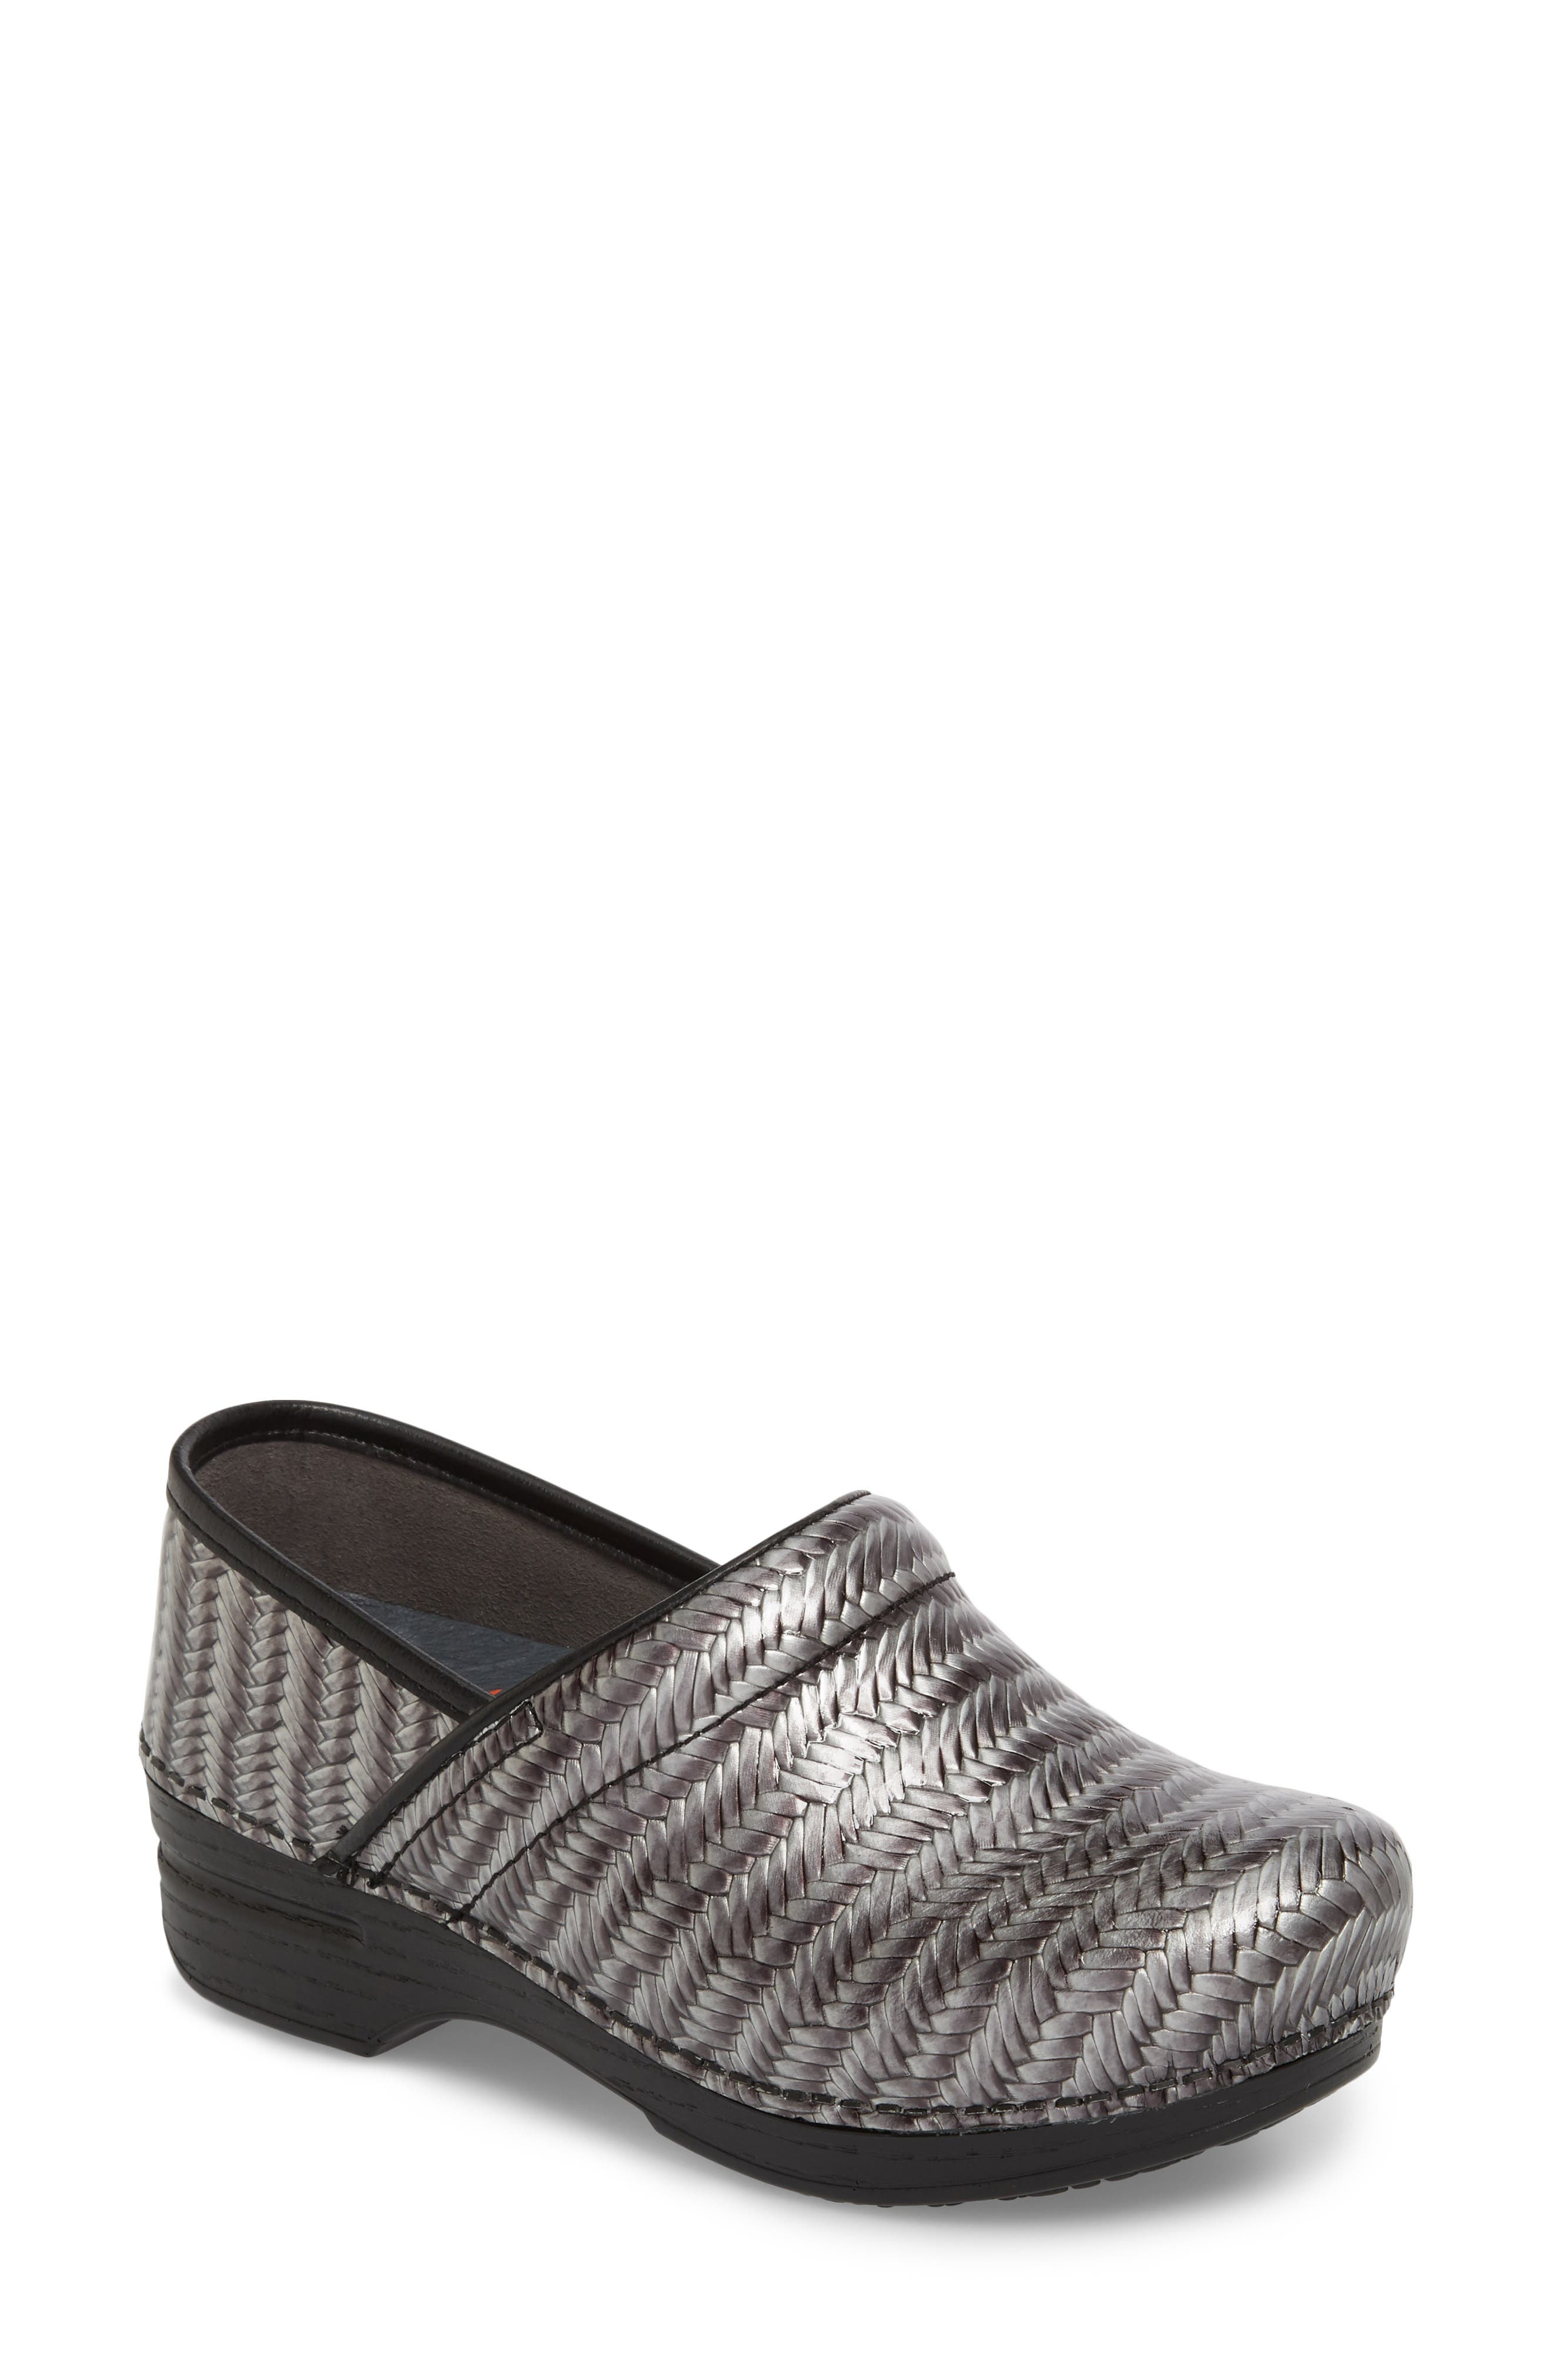 Pro XP Clog,                         Main,                         color, GREY PATENT LEATHER